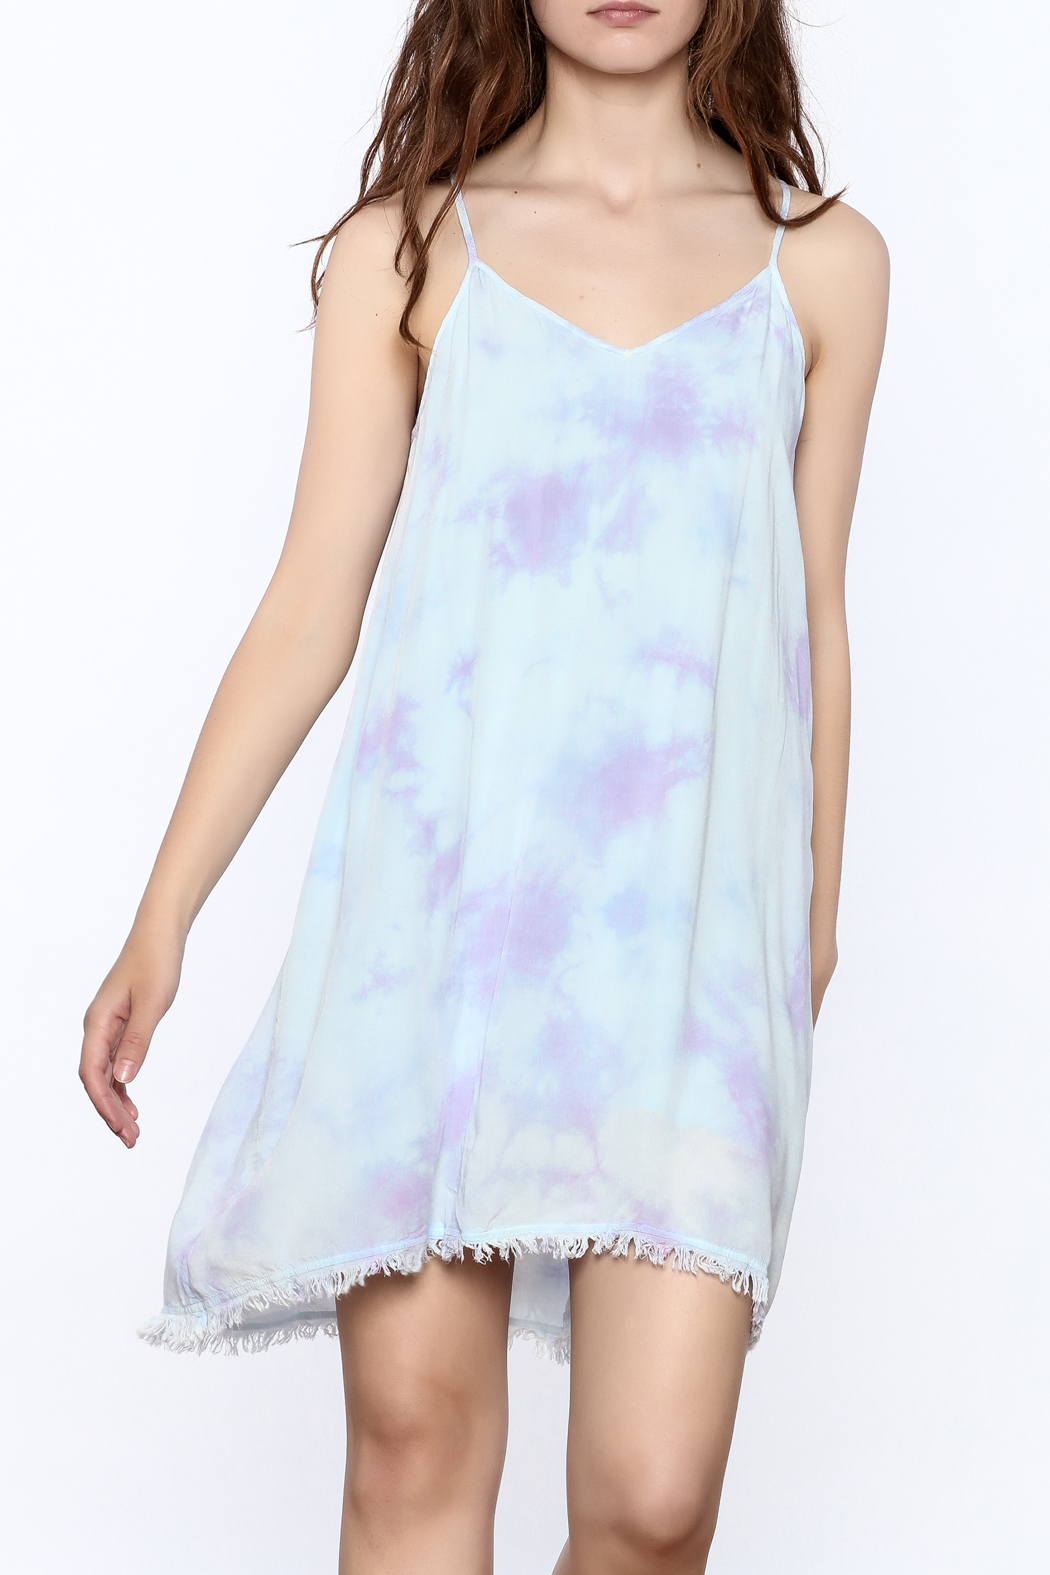 Mustard Seed Lilac Tie Dye Dress - Front Cropped Image